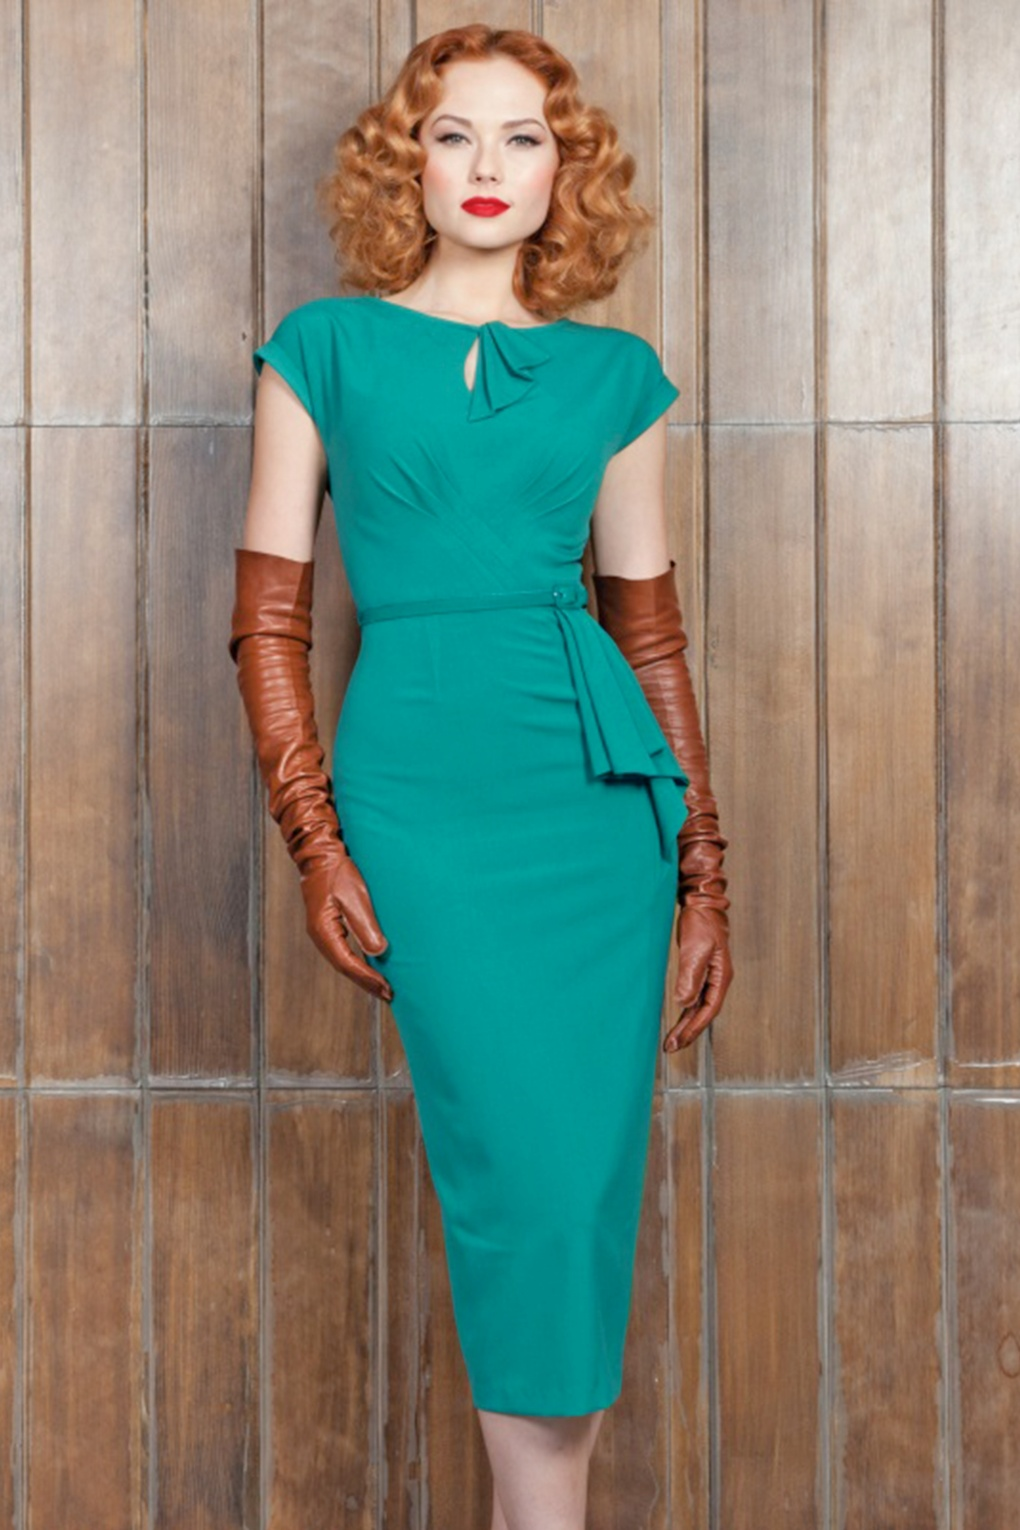 Vintage Inspired Cocktail Dresses, Party Dresses 40s Timeless Pencil Dress in Turquoise £188.74 AT vintagedancer.com